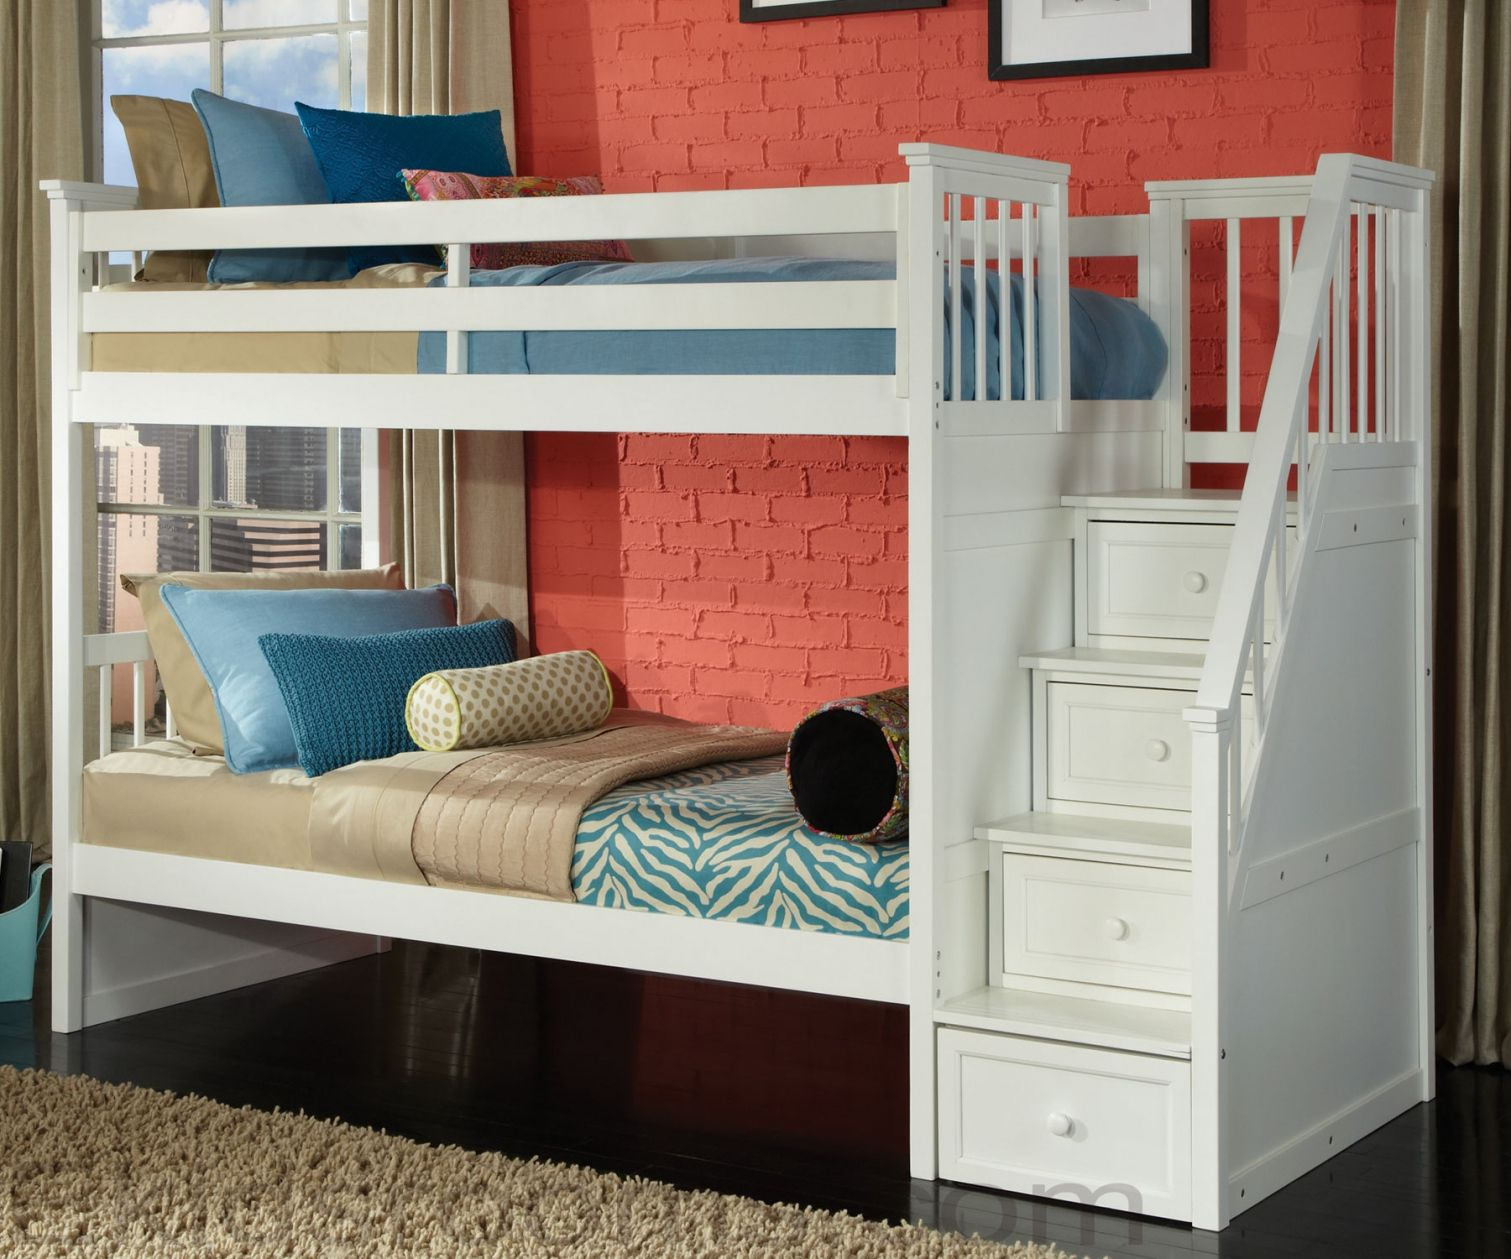 bunk beds with stairs under interior design bedroom ideas